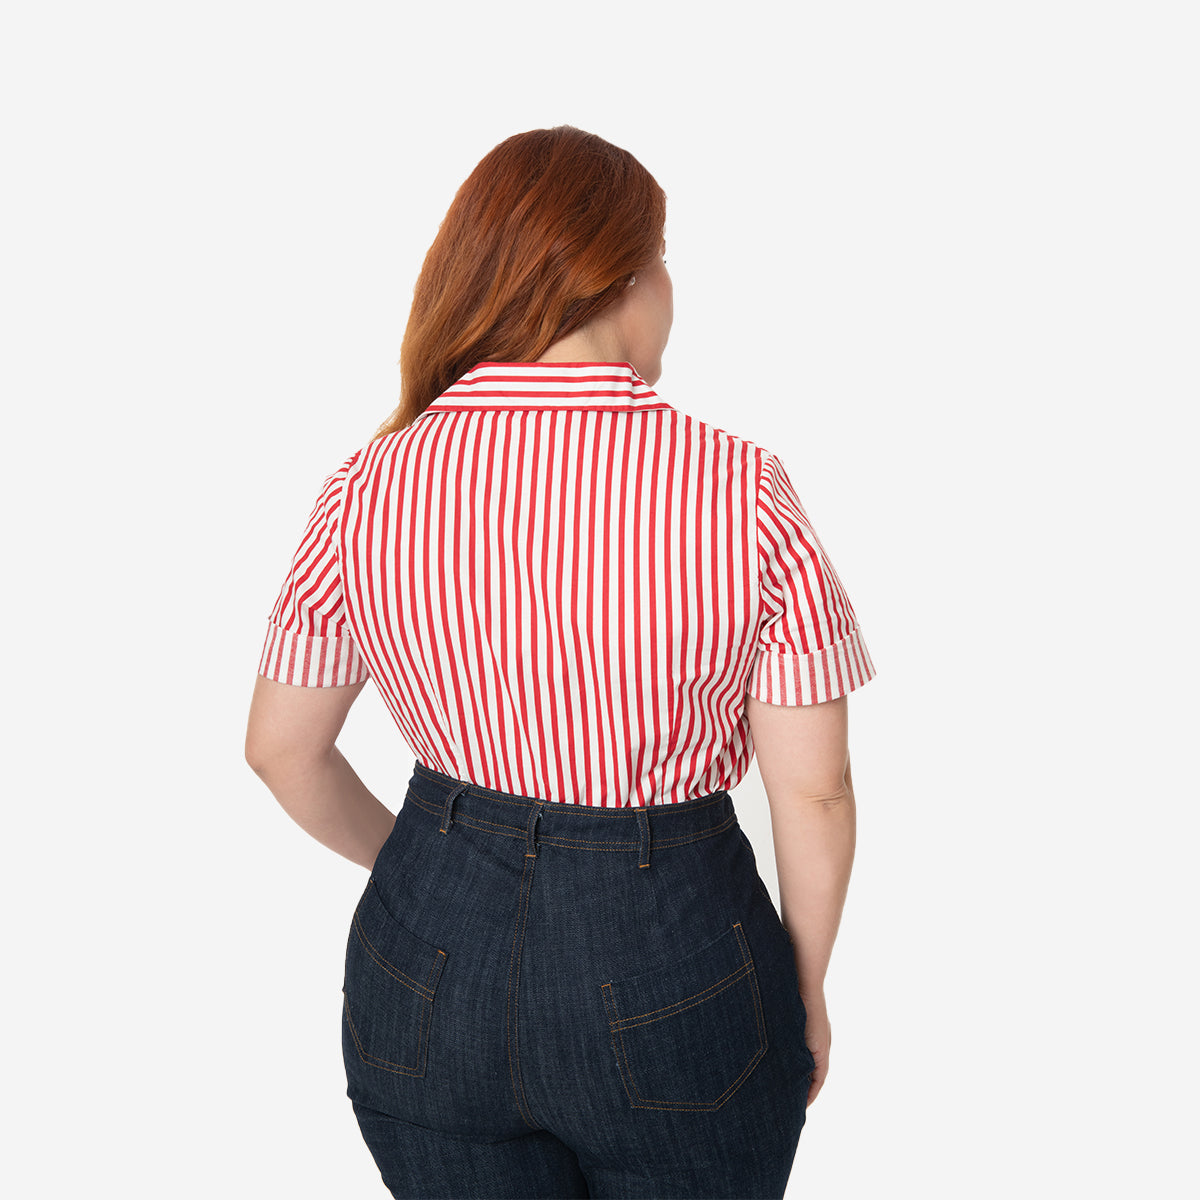 I Love Lucy x Unique Vintage: The Little Ricky Striped Blouse (Plus Sizing)